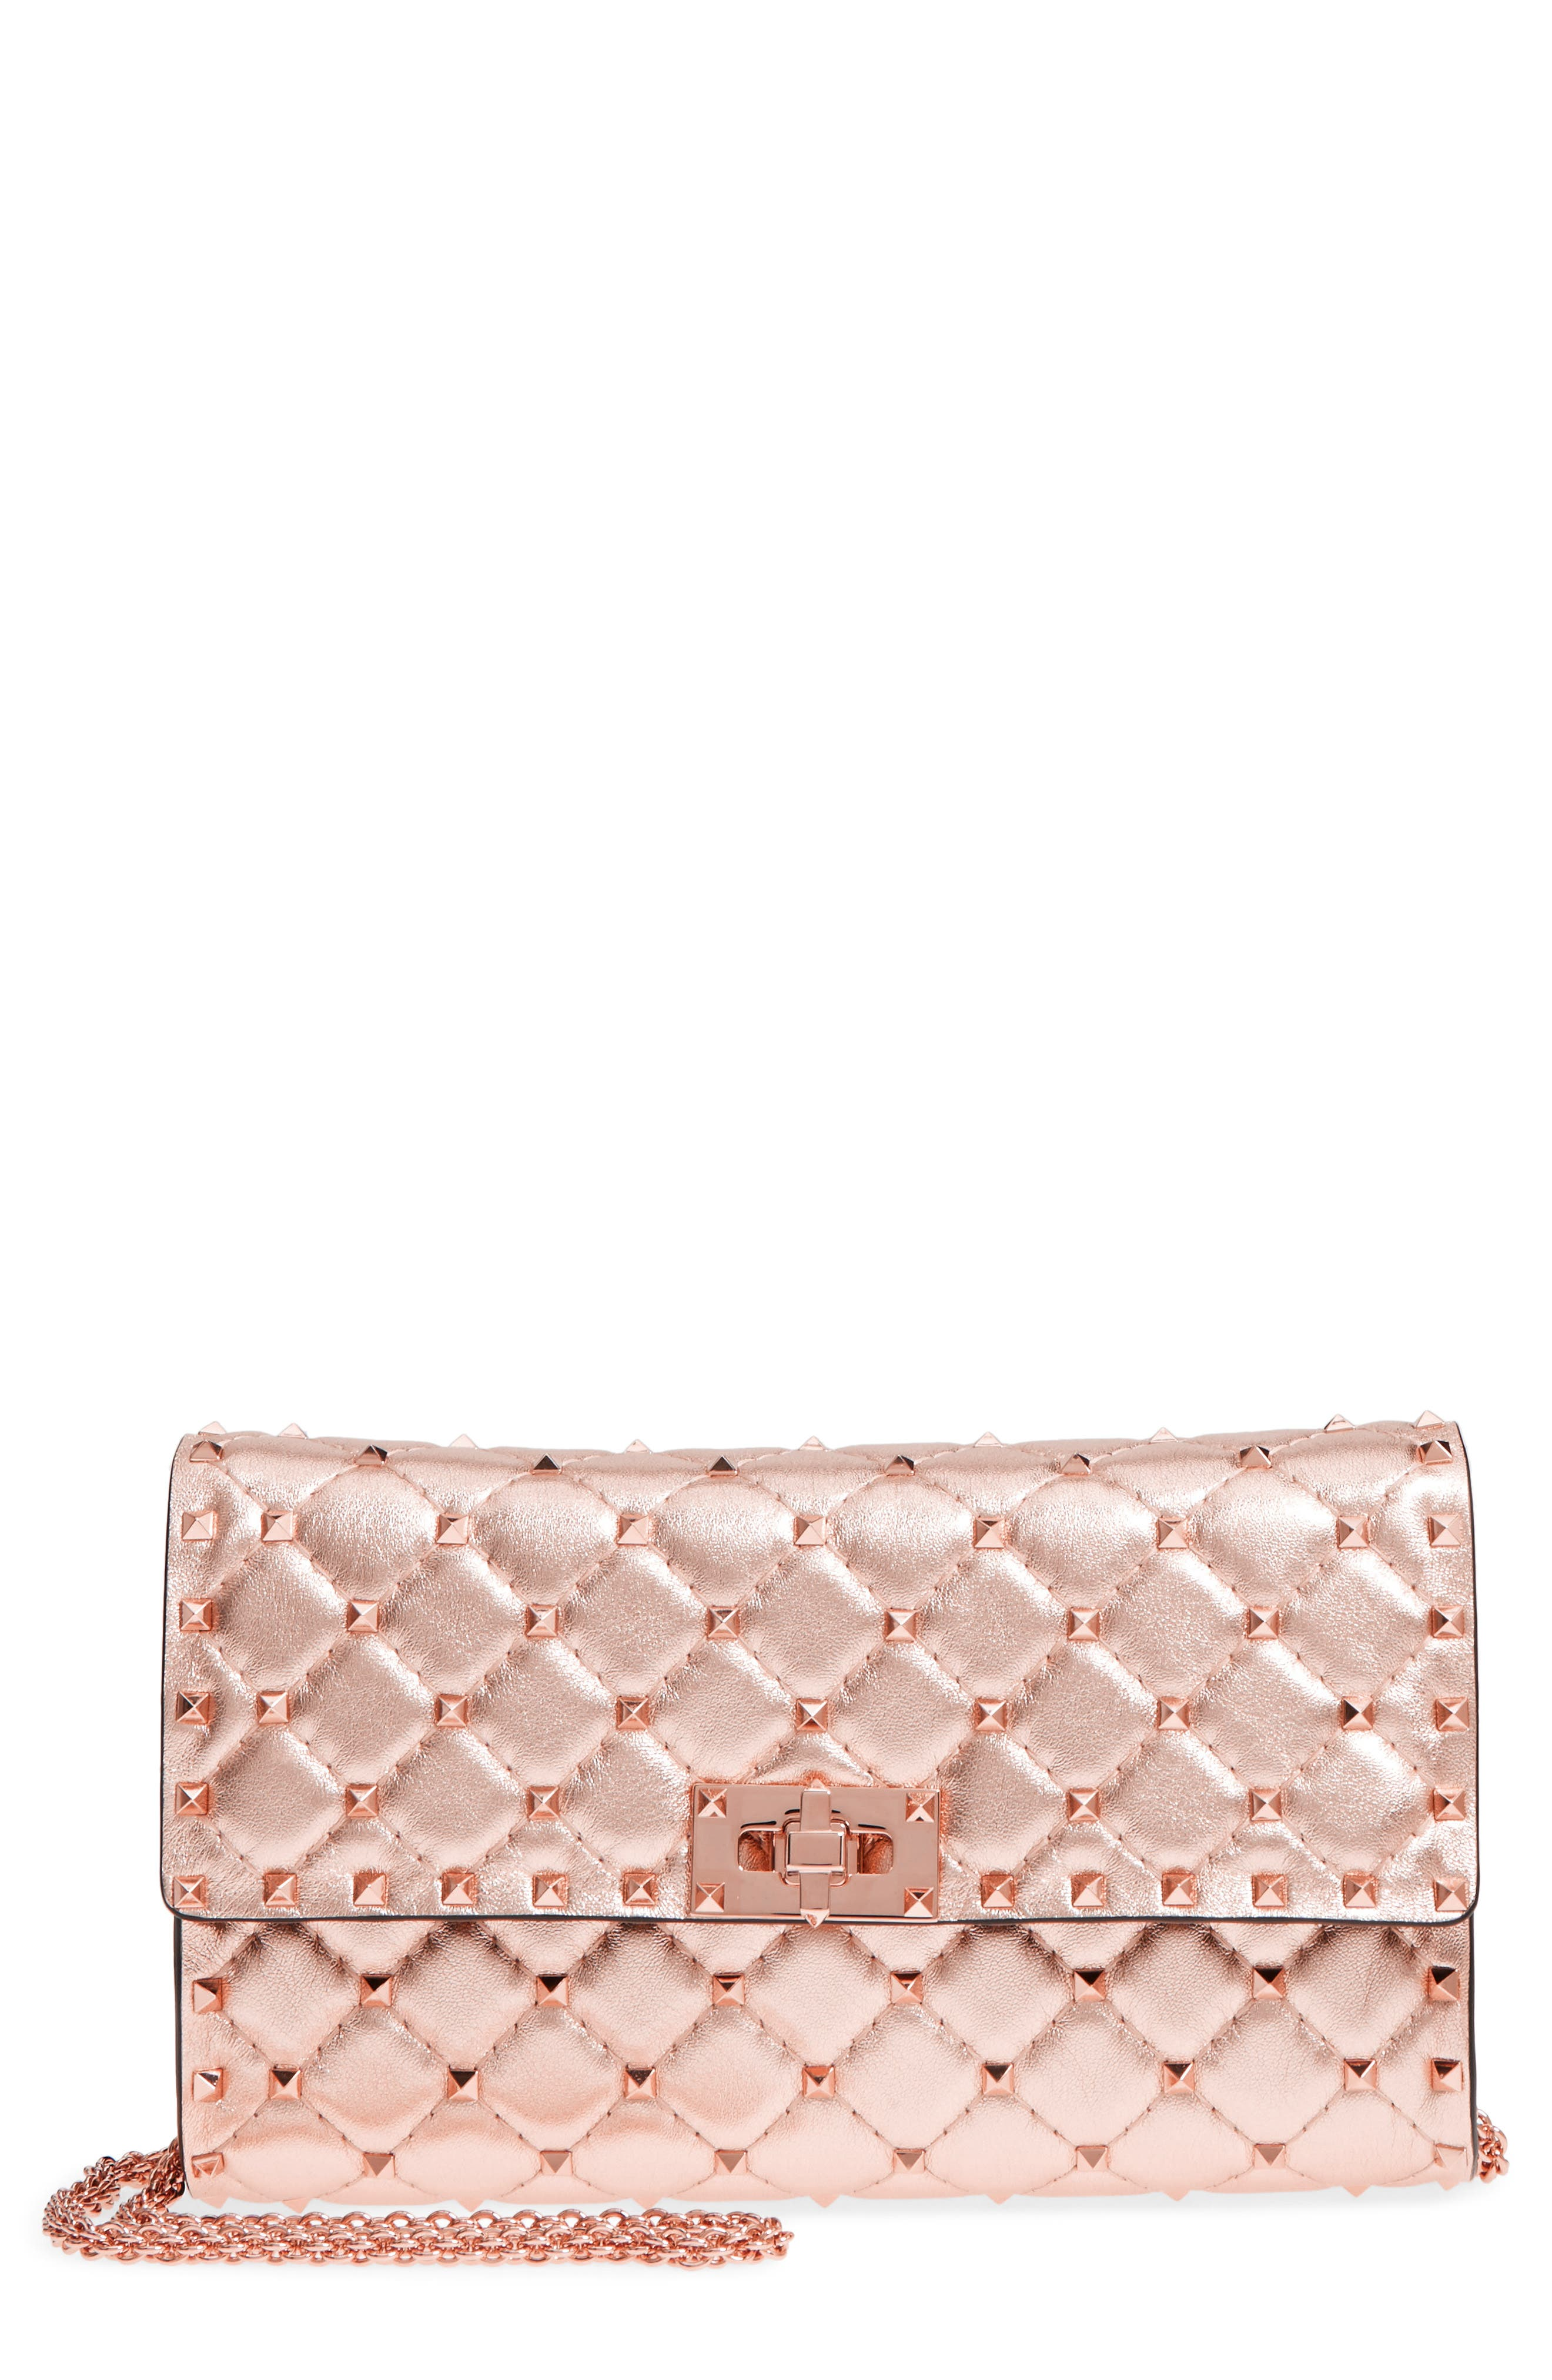 Rockstud Metallic Leather Shoulder Bag,                         Main,                         color, 682